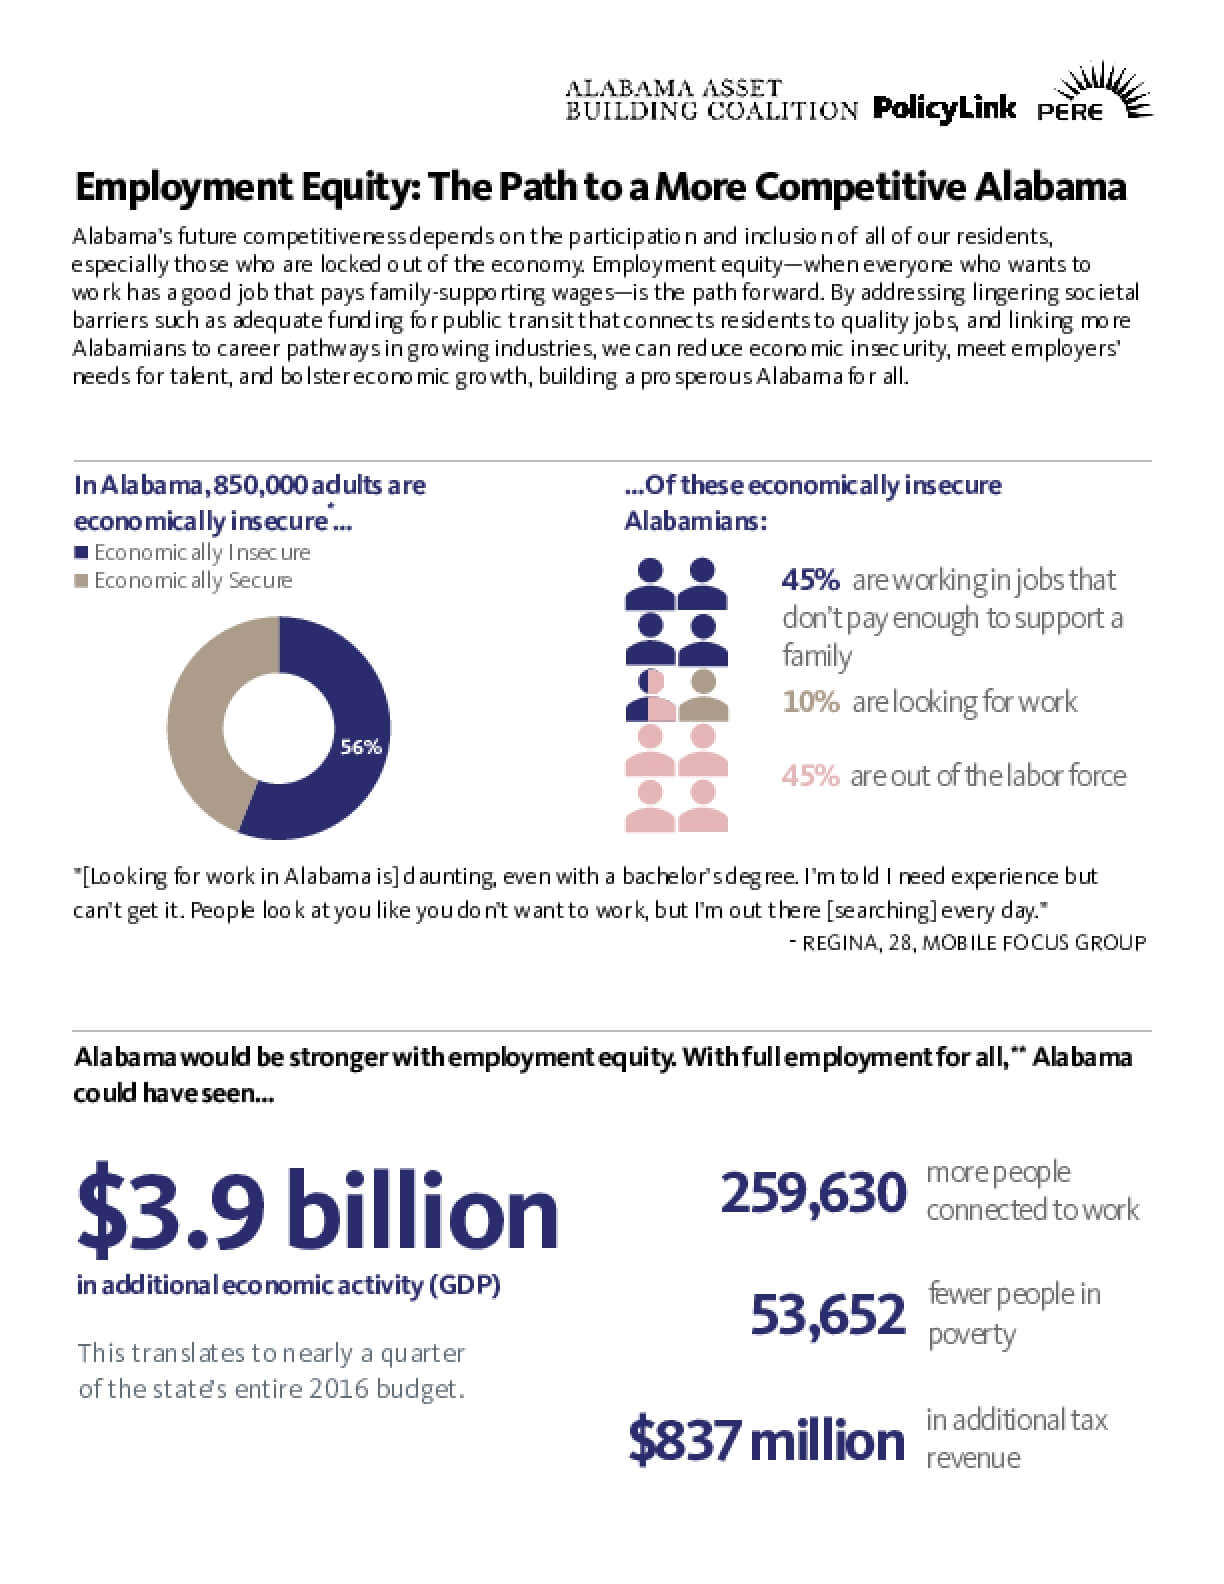 Employment Equity: The Path to a More Competitive Alabama